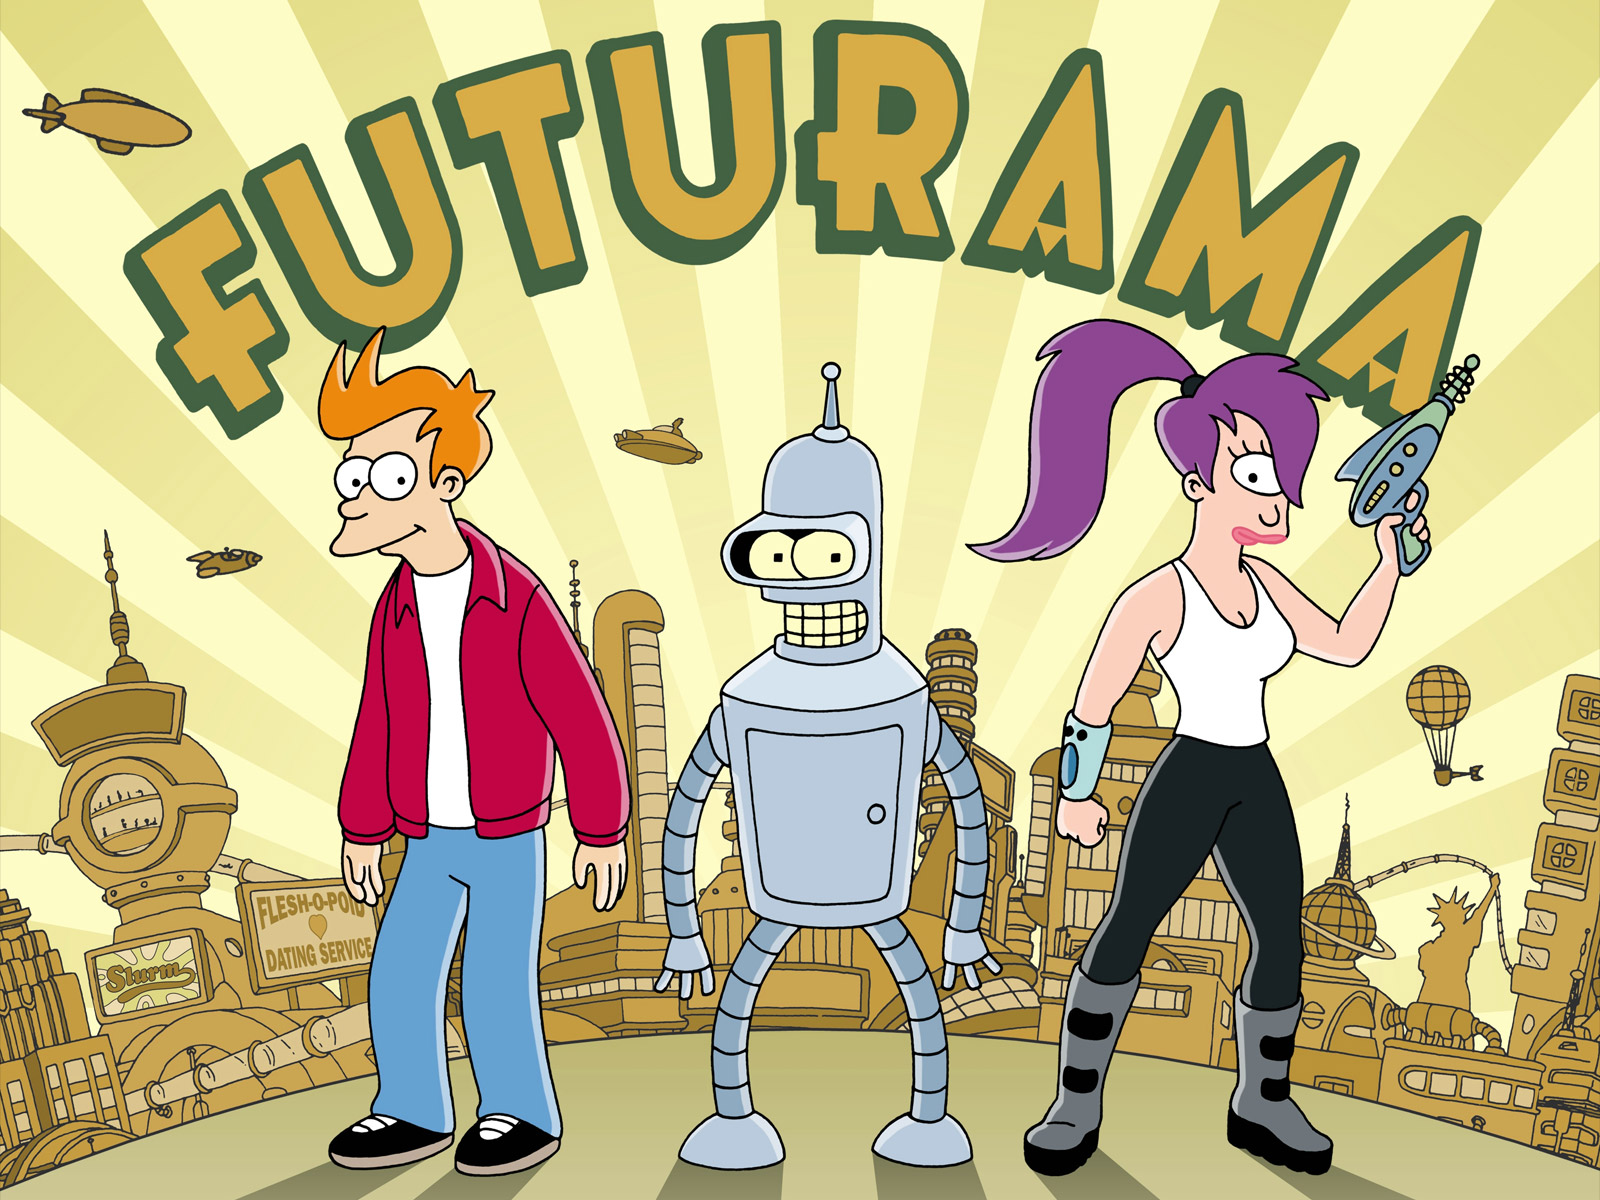 futurama cancled